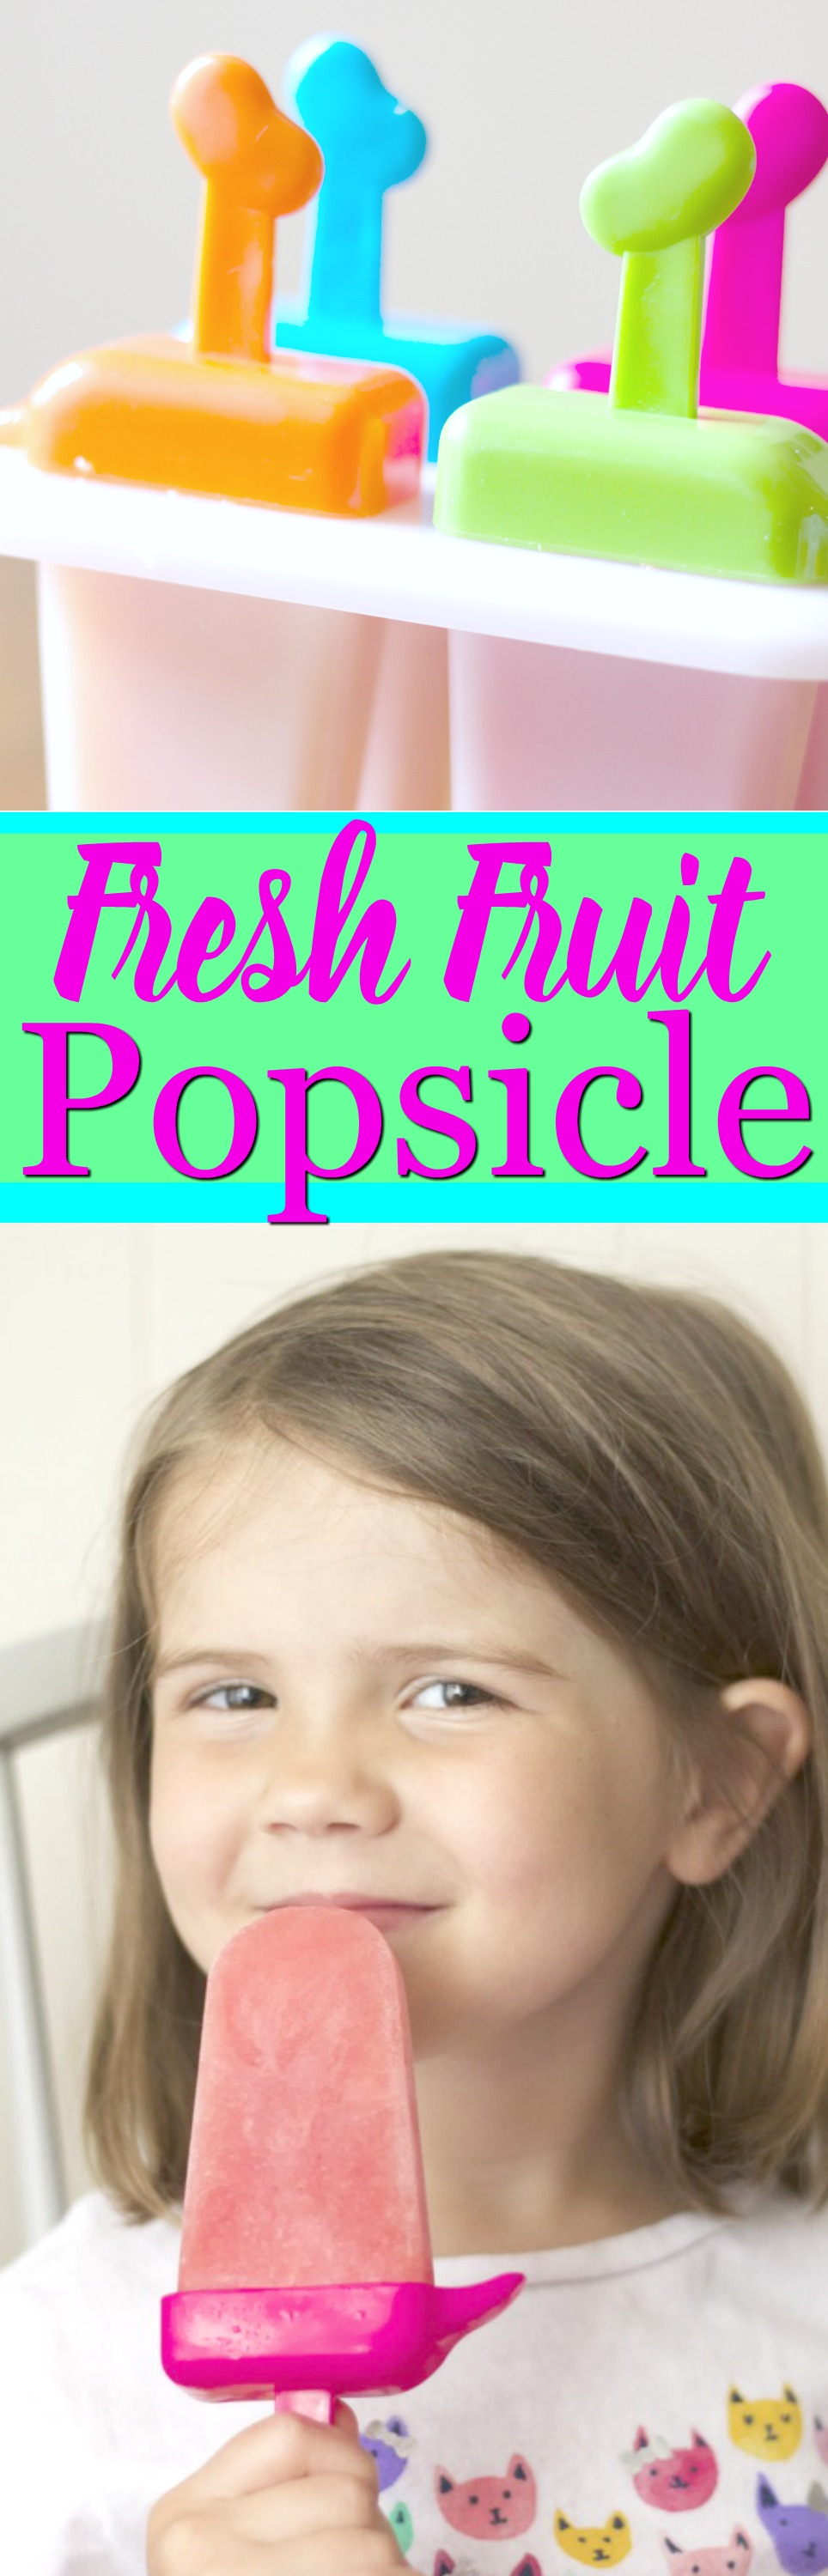 Fresh Fruit Popsicle- Stawberry and Peach Summer Popsicle, Kid friendly food and delicious